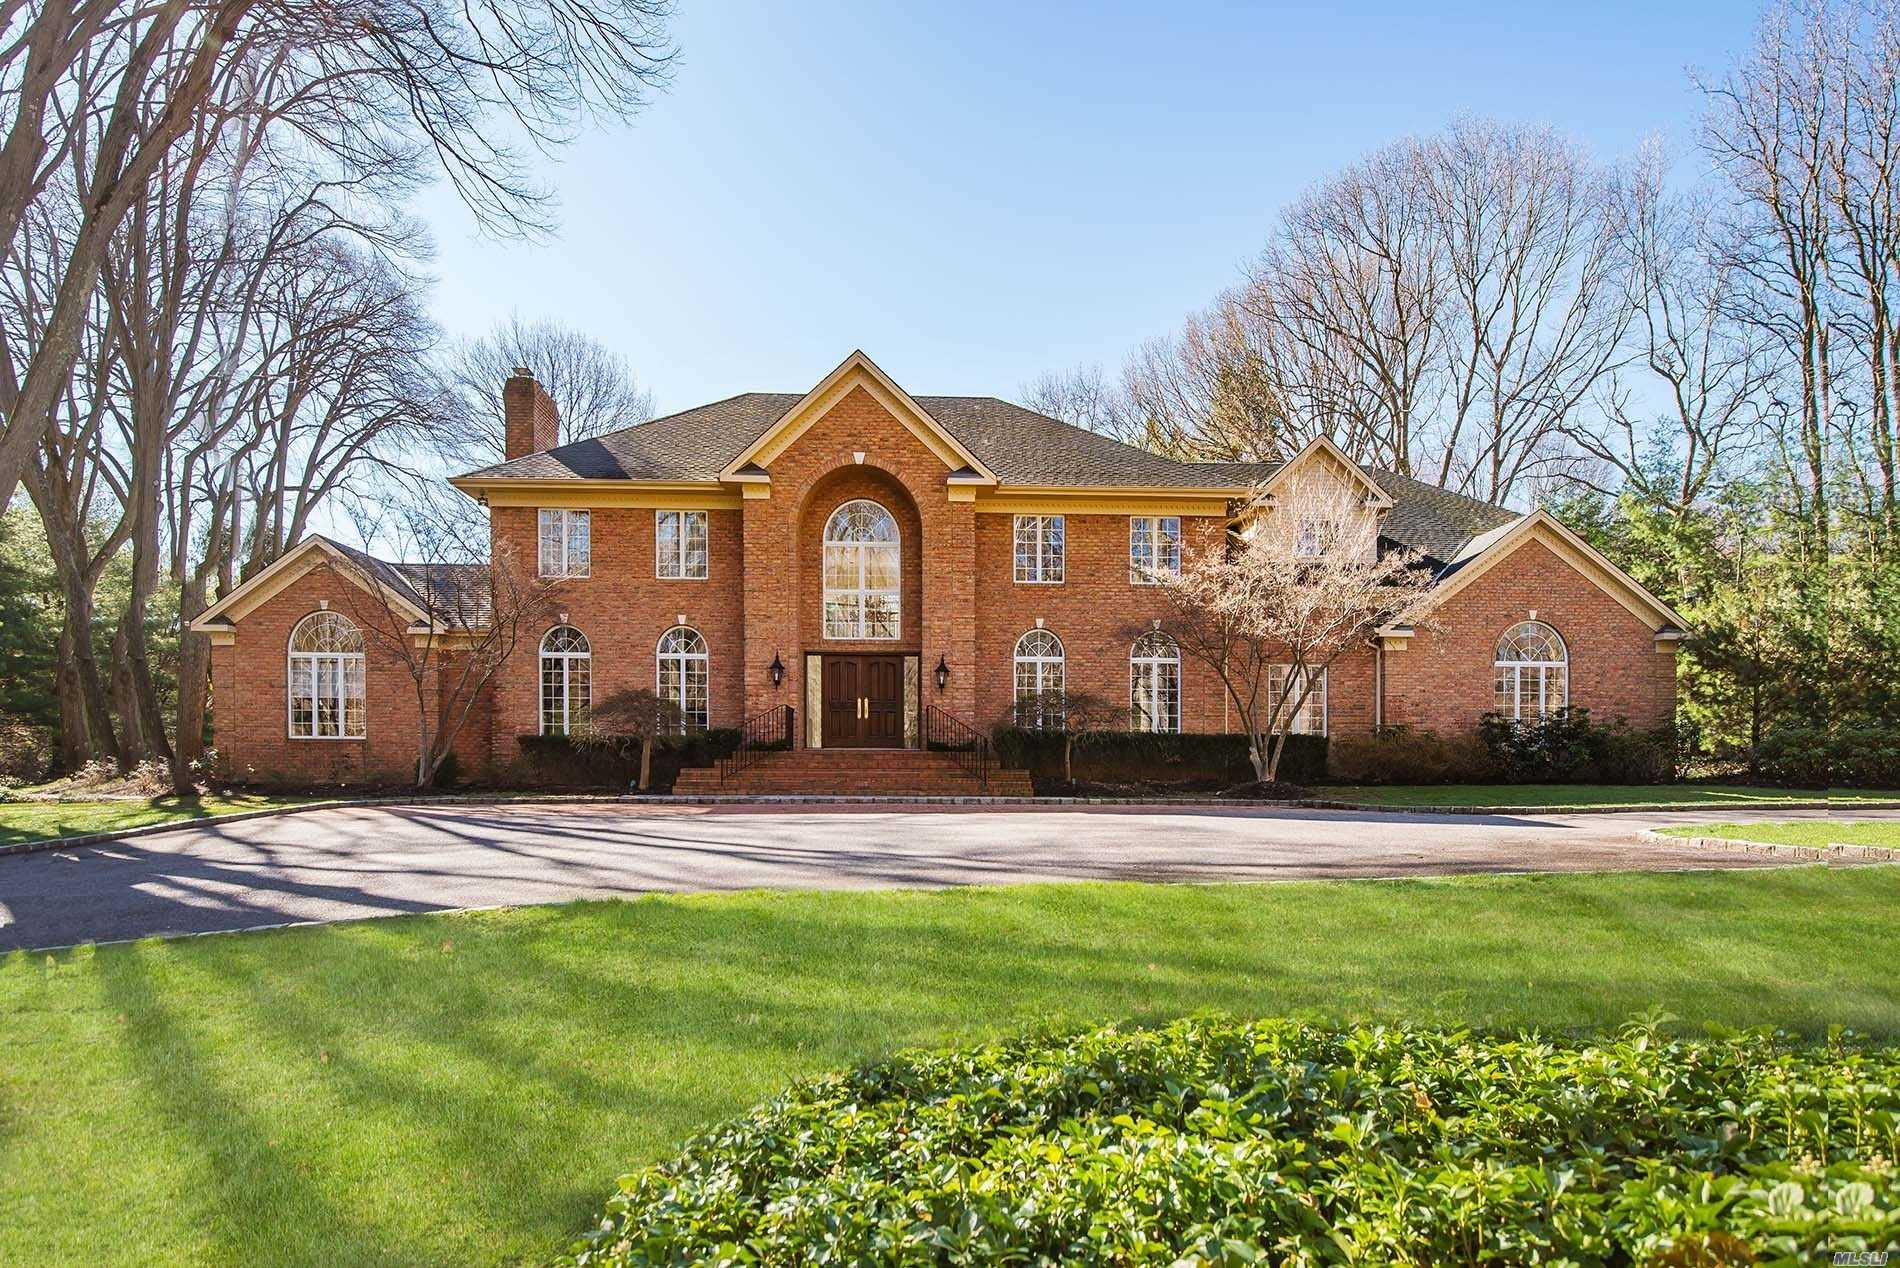 Stunning Laurel Hollow Custom Built Brick Colonial Set On 2 Beautifully Flat Landscaped Acres. An architectural Gem Featuring Floor to Ceiling Windows and Expansive Entertaining Spaces, Exquisite Wood And Marble Floors, Gourmet EIK, Five Bedrooms, 4 Full 1 Half Bath, Living Room, Office, 2nd Floor Playroom/Bonus Rm. Park-like Property With Beautiful Bluestone Patios And Room For Pool And Tennis, Cold Spring Harbor School District #2 Laurel Hollow Beach and Mooring Rights.